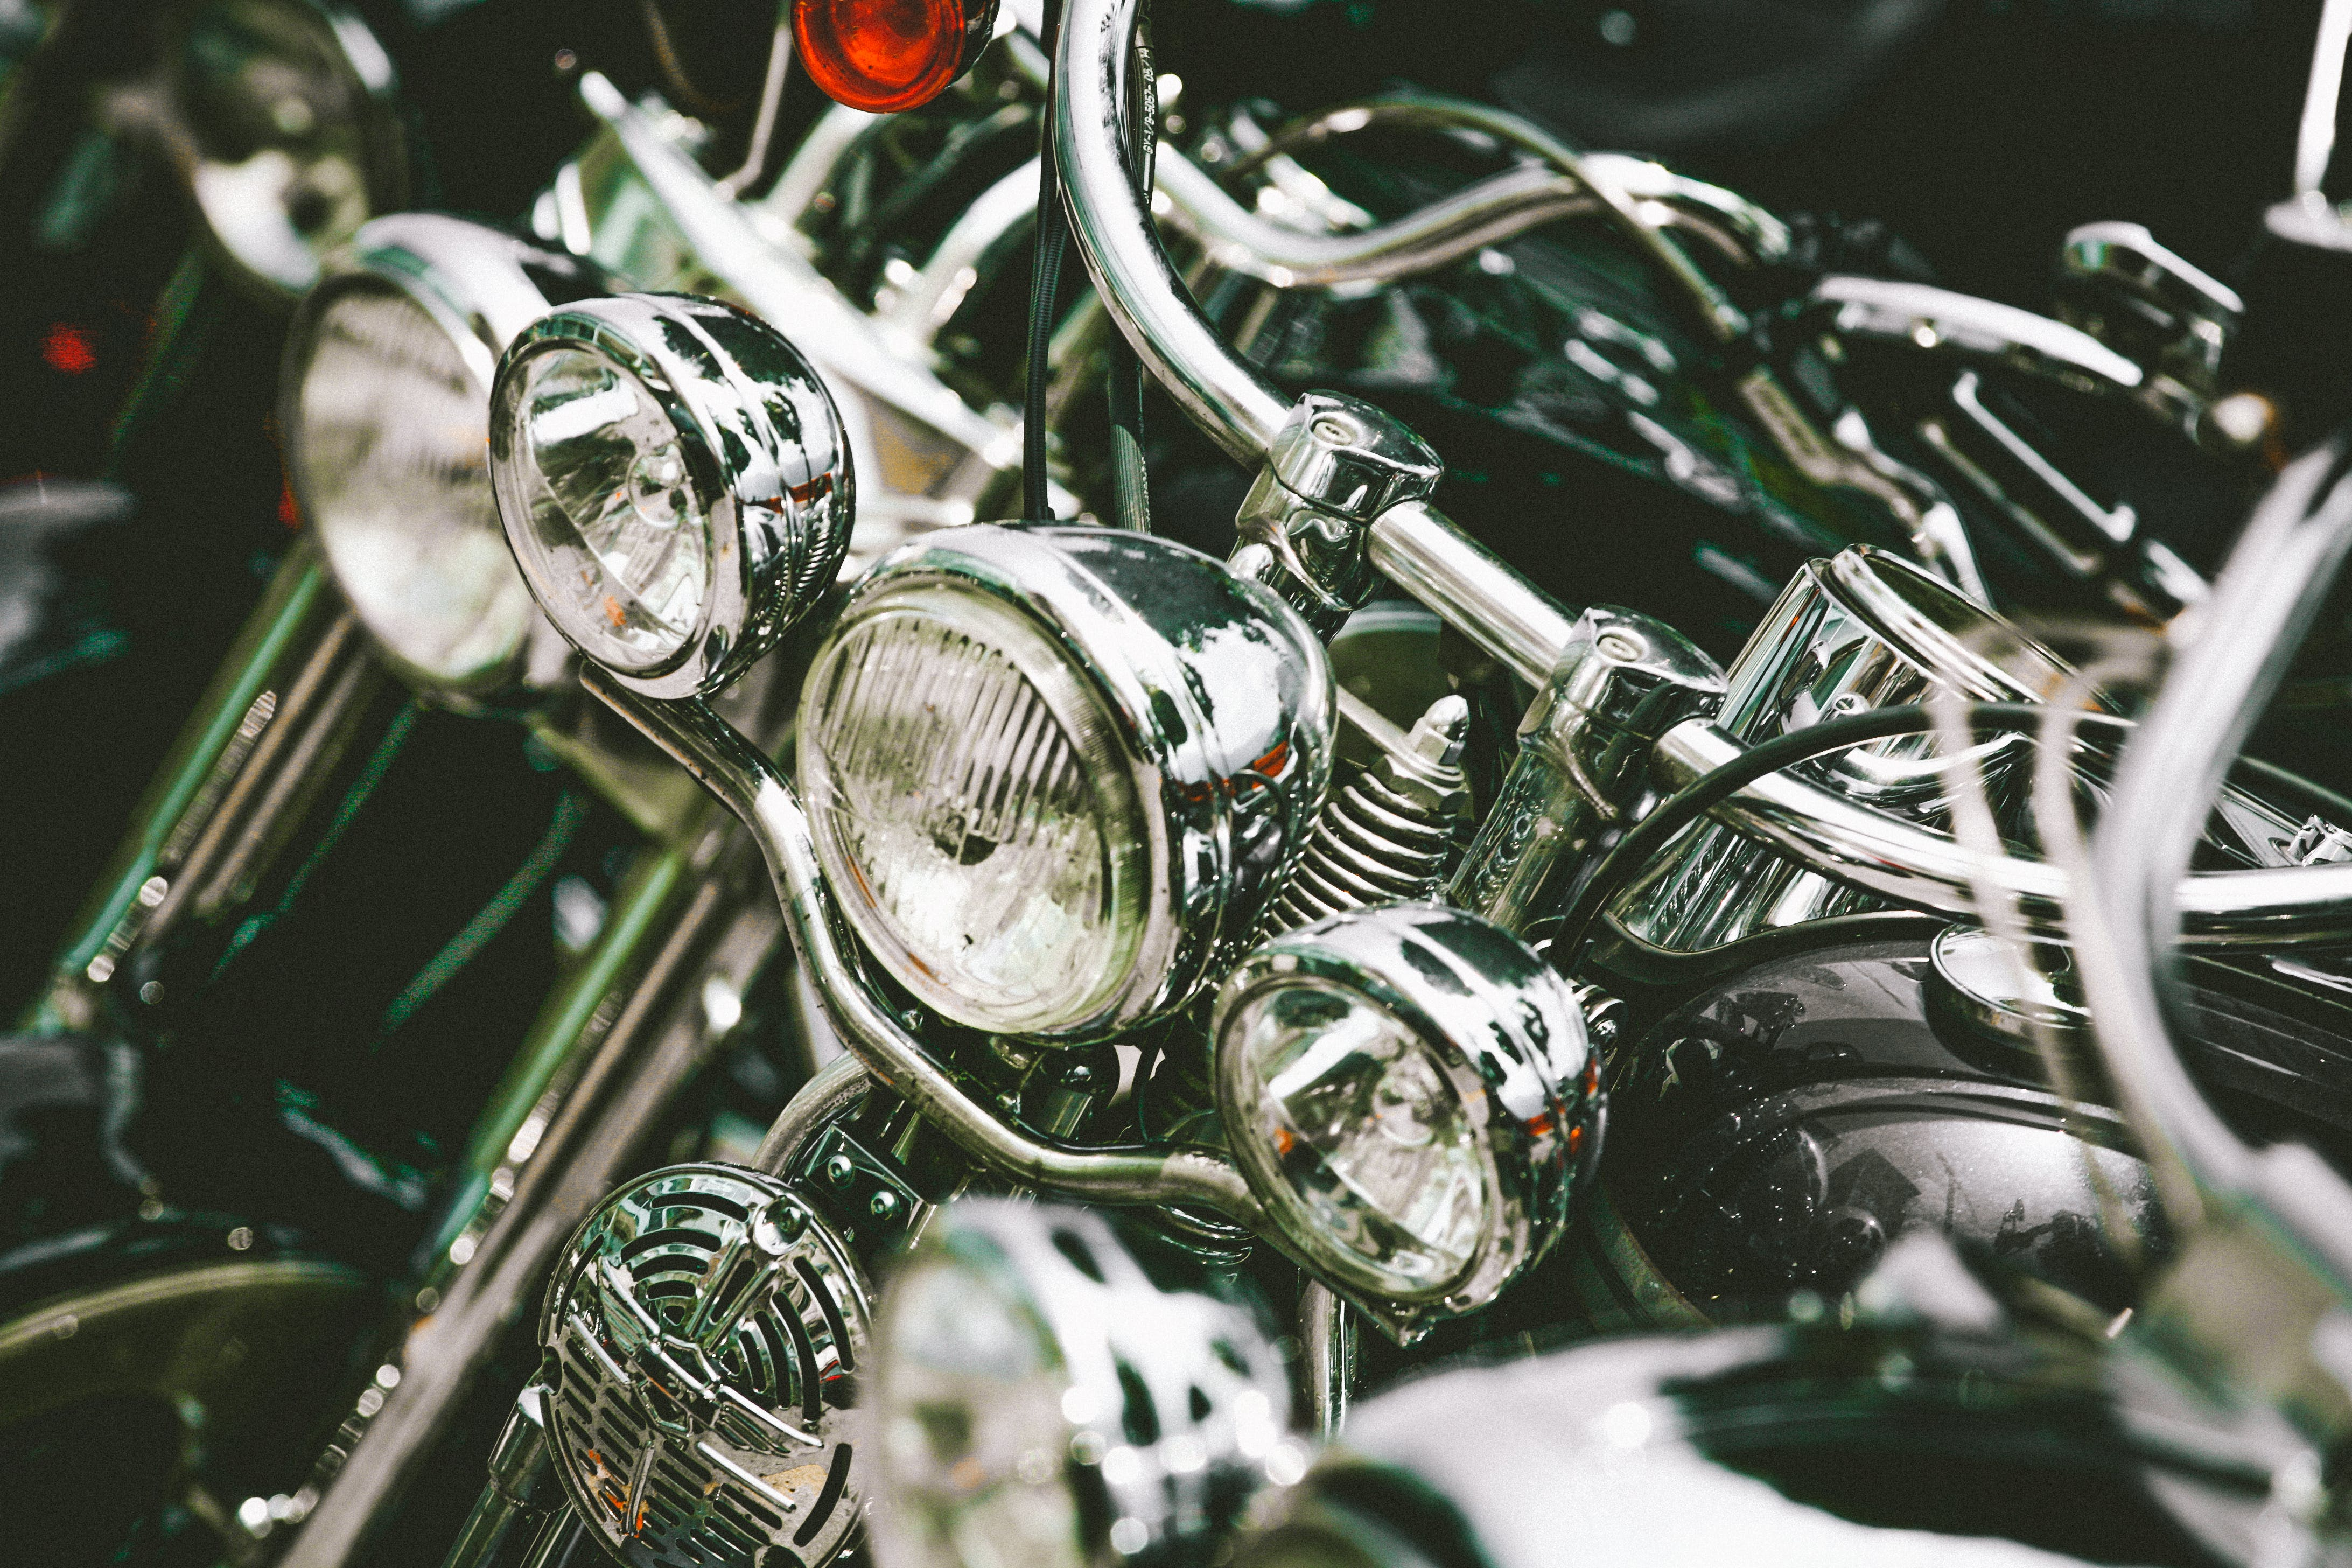 Close-Up Photo of Motorcycle Headlights